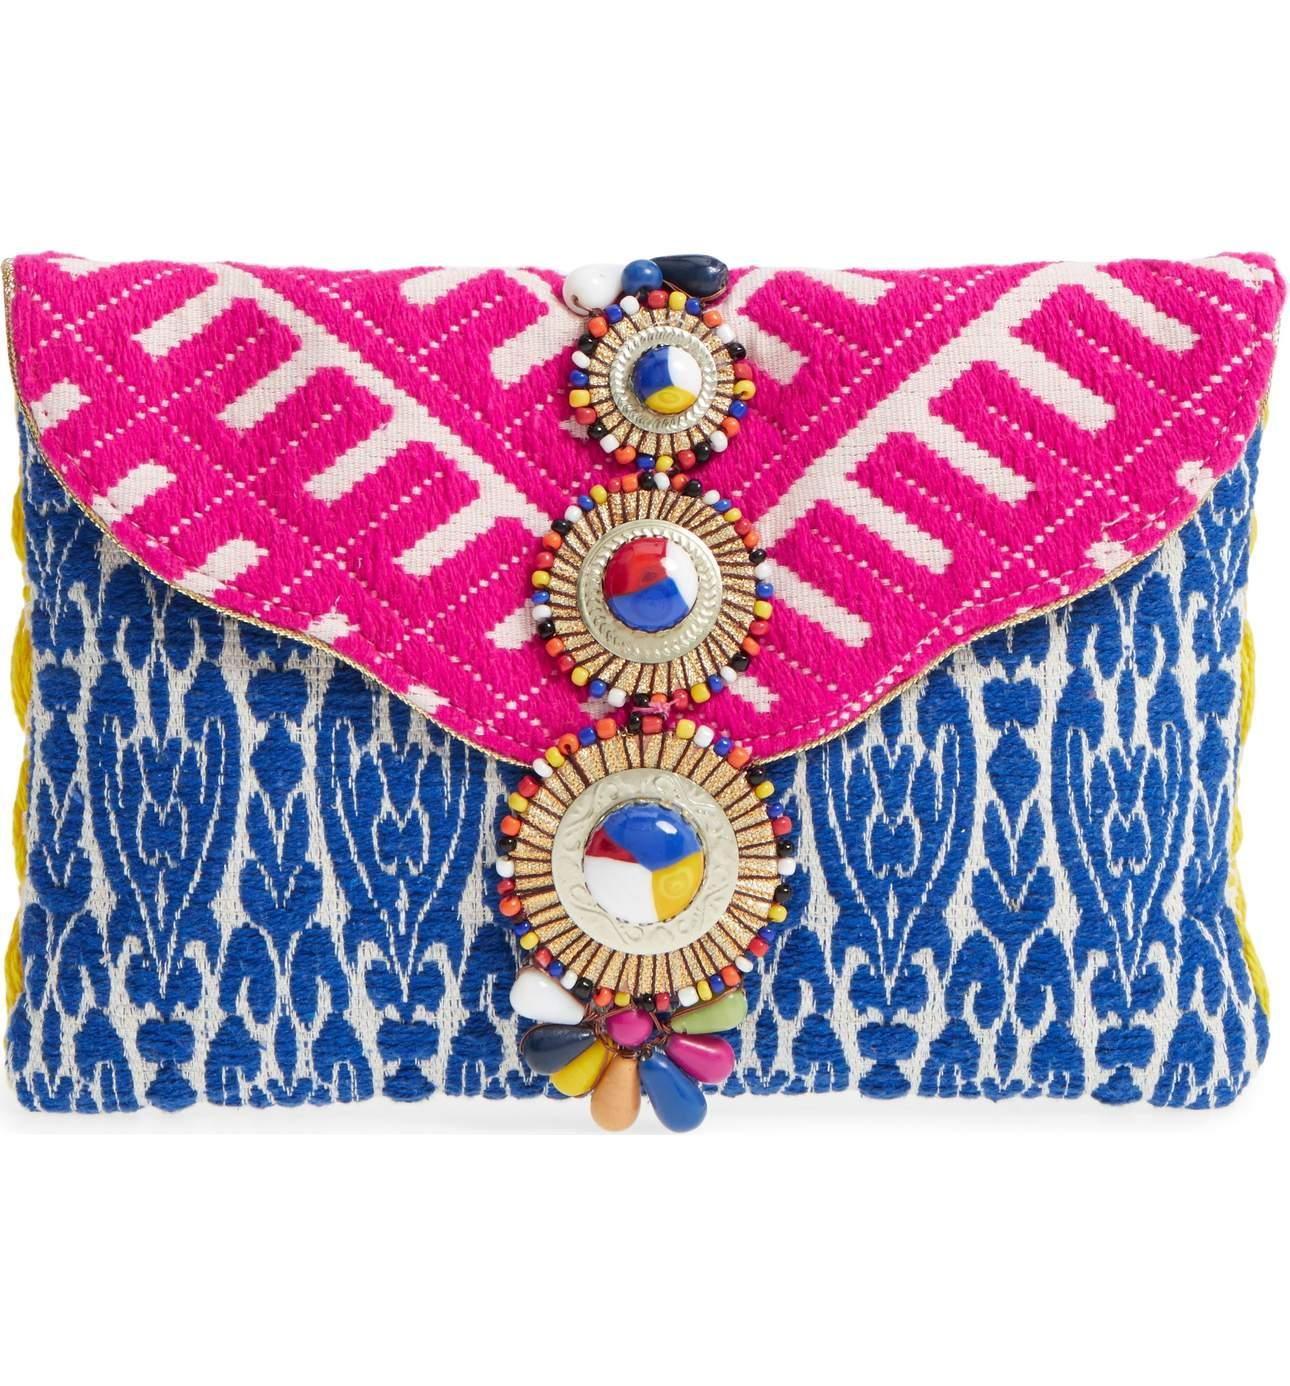 <p>This Steven by Steve Madden Beaded & Embroidered Clutch is a perfect way to spice up your outfit!{&nbsp;} It can make any bland top or dress stand out. $75.00 at Nordstrom. (Image: Nordstrom){&nbsp;}</p><p></p>